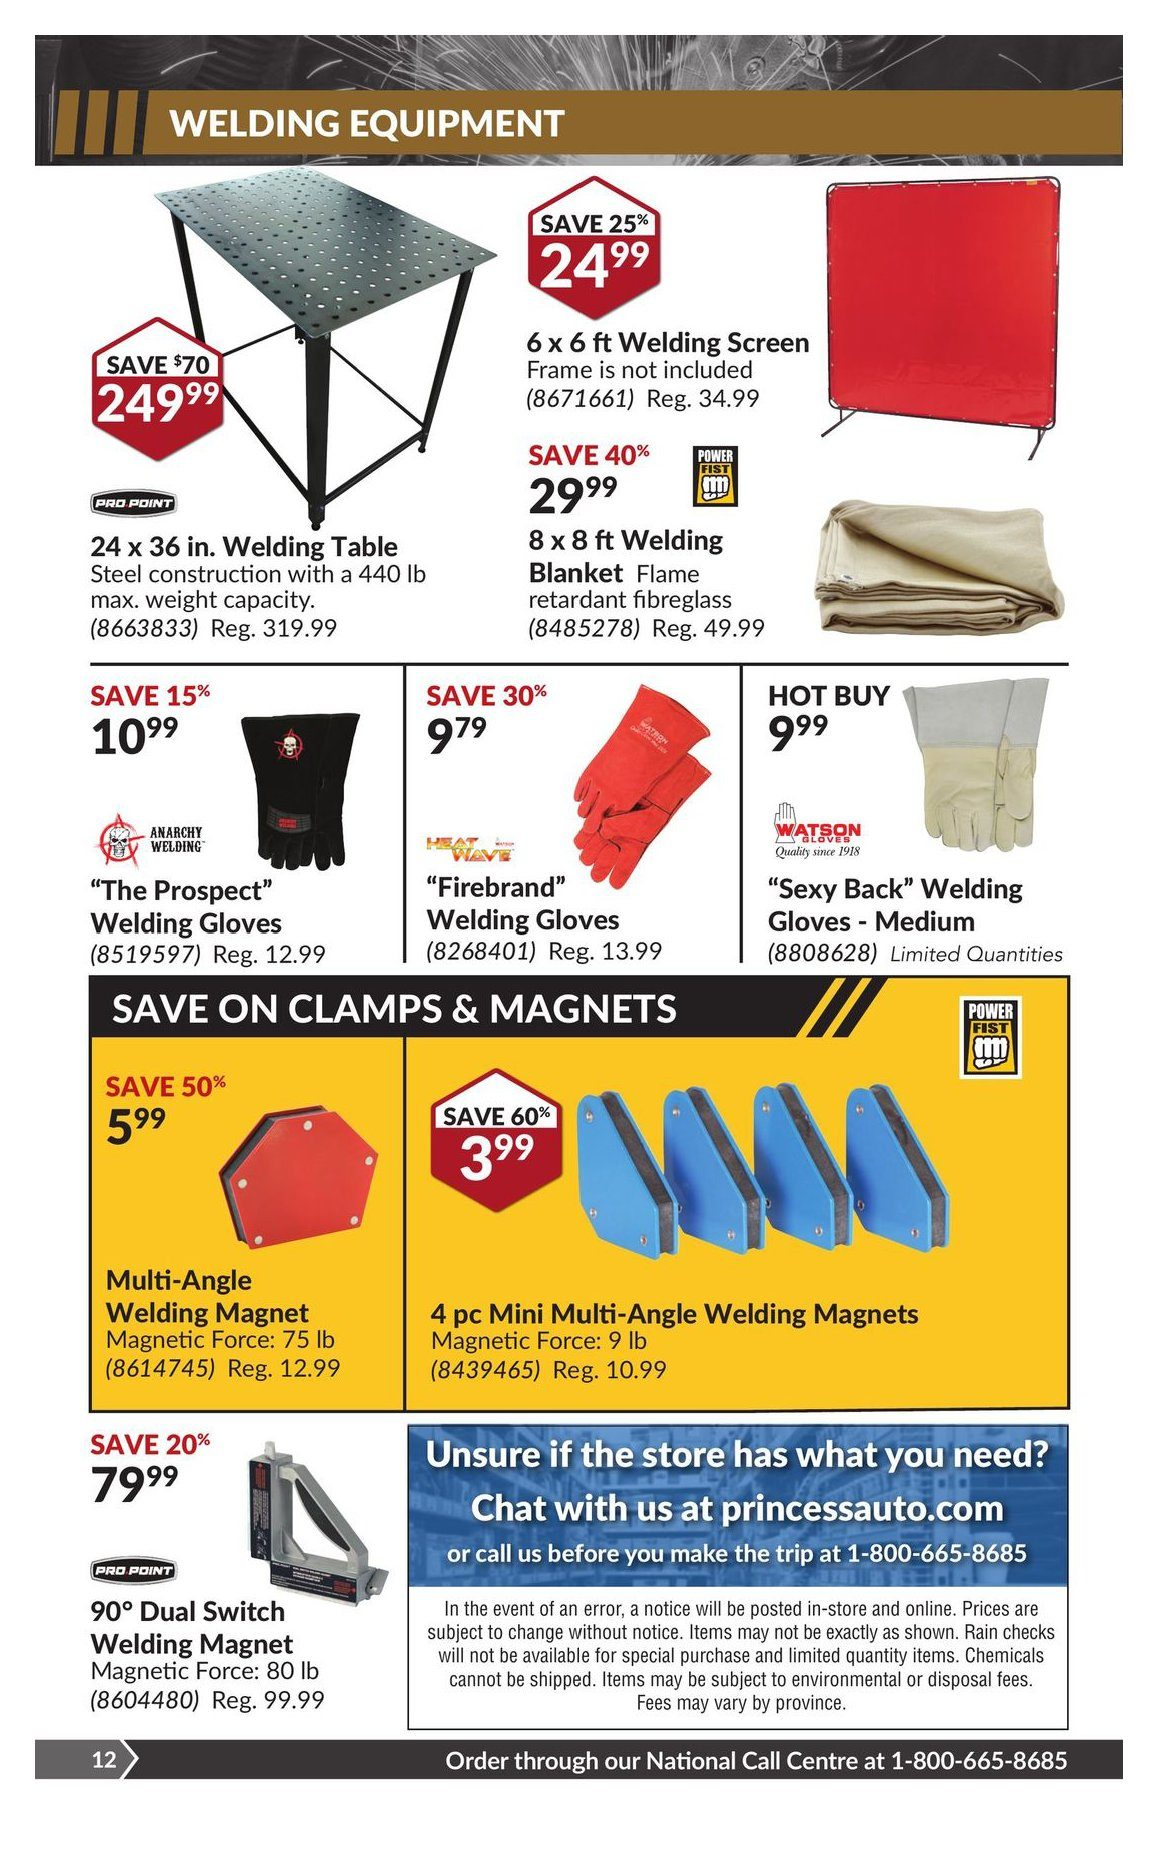 Princess Auto Weekly Flyer 2 Weeks Sale Deals To Explore Nov Speed Ceiling Fan Switch With Pull Chain 4wire Rona 13 25